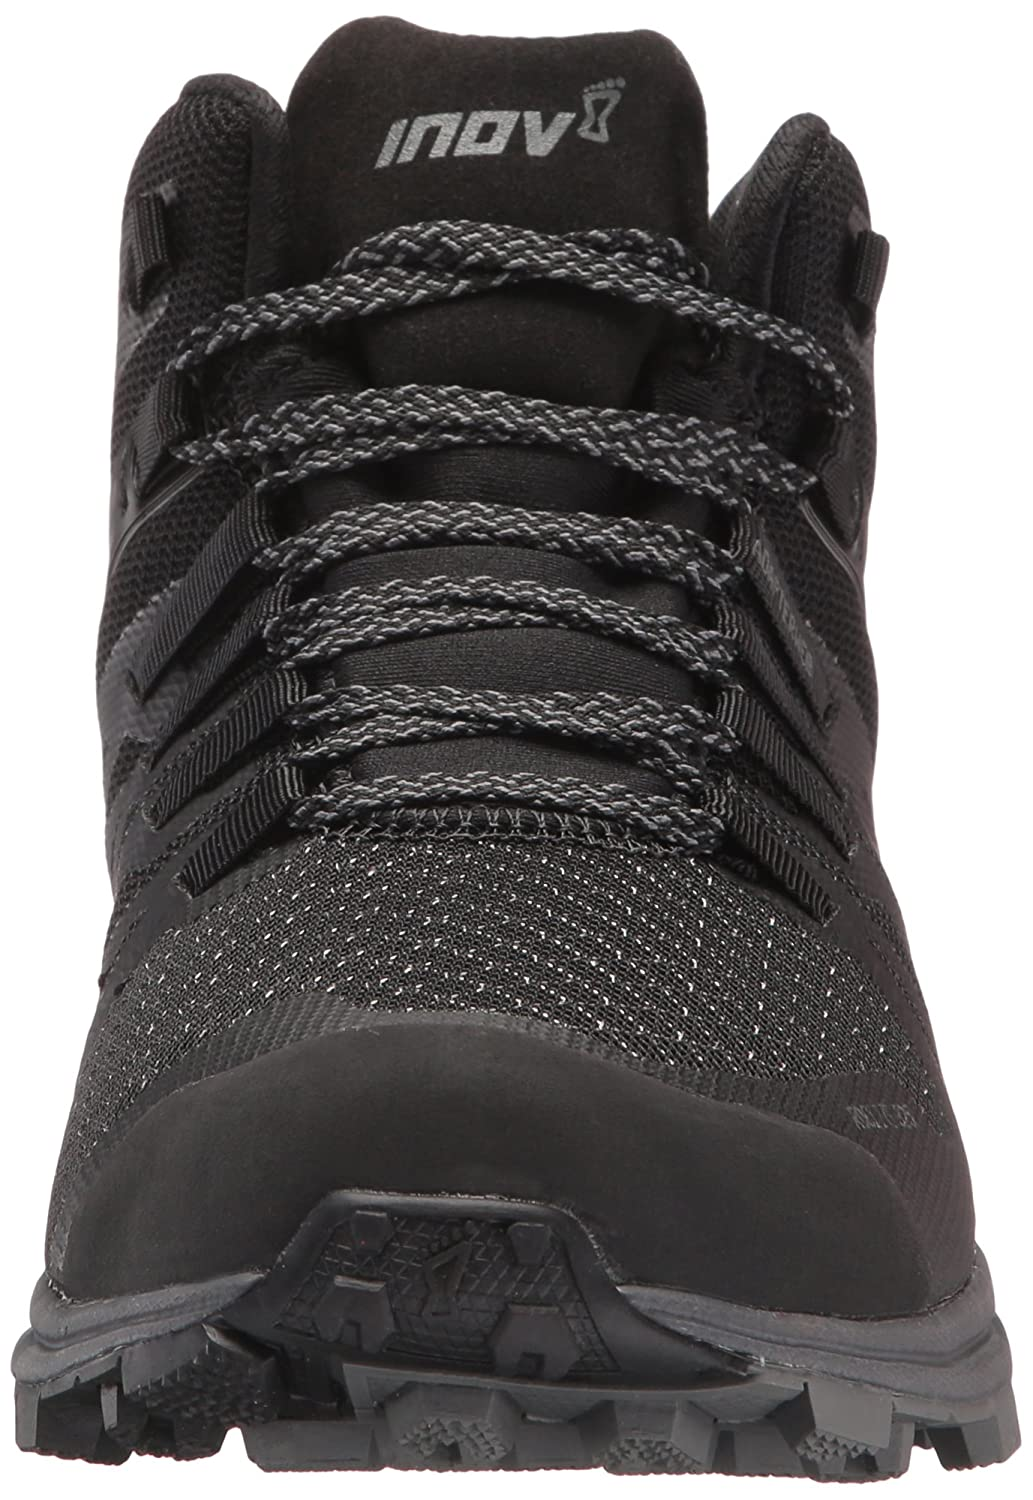 hot sale online b19f0 9f788 Rookite 325 Trail Runner de mujeres Inov-8 Gris oscuro